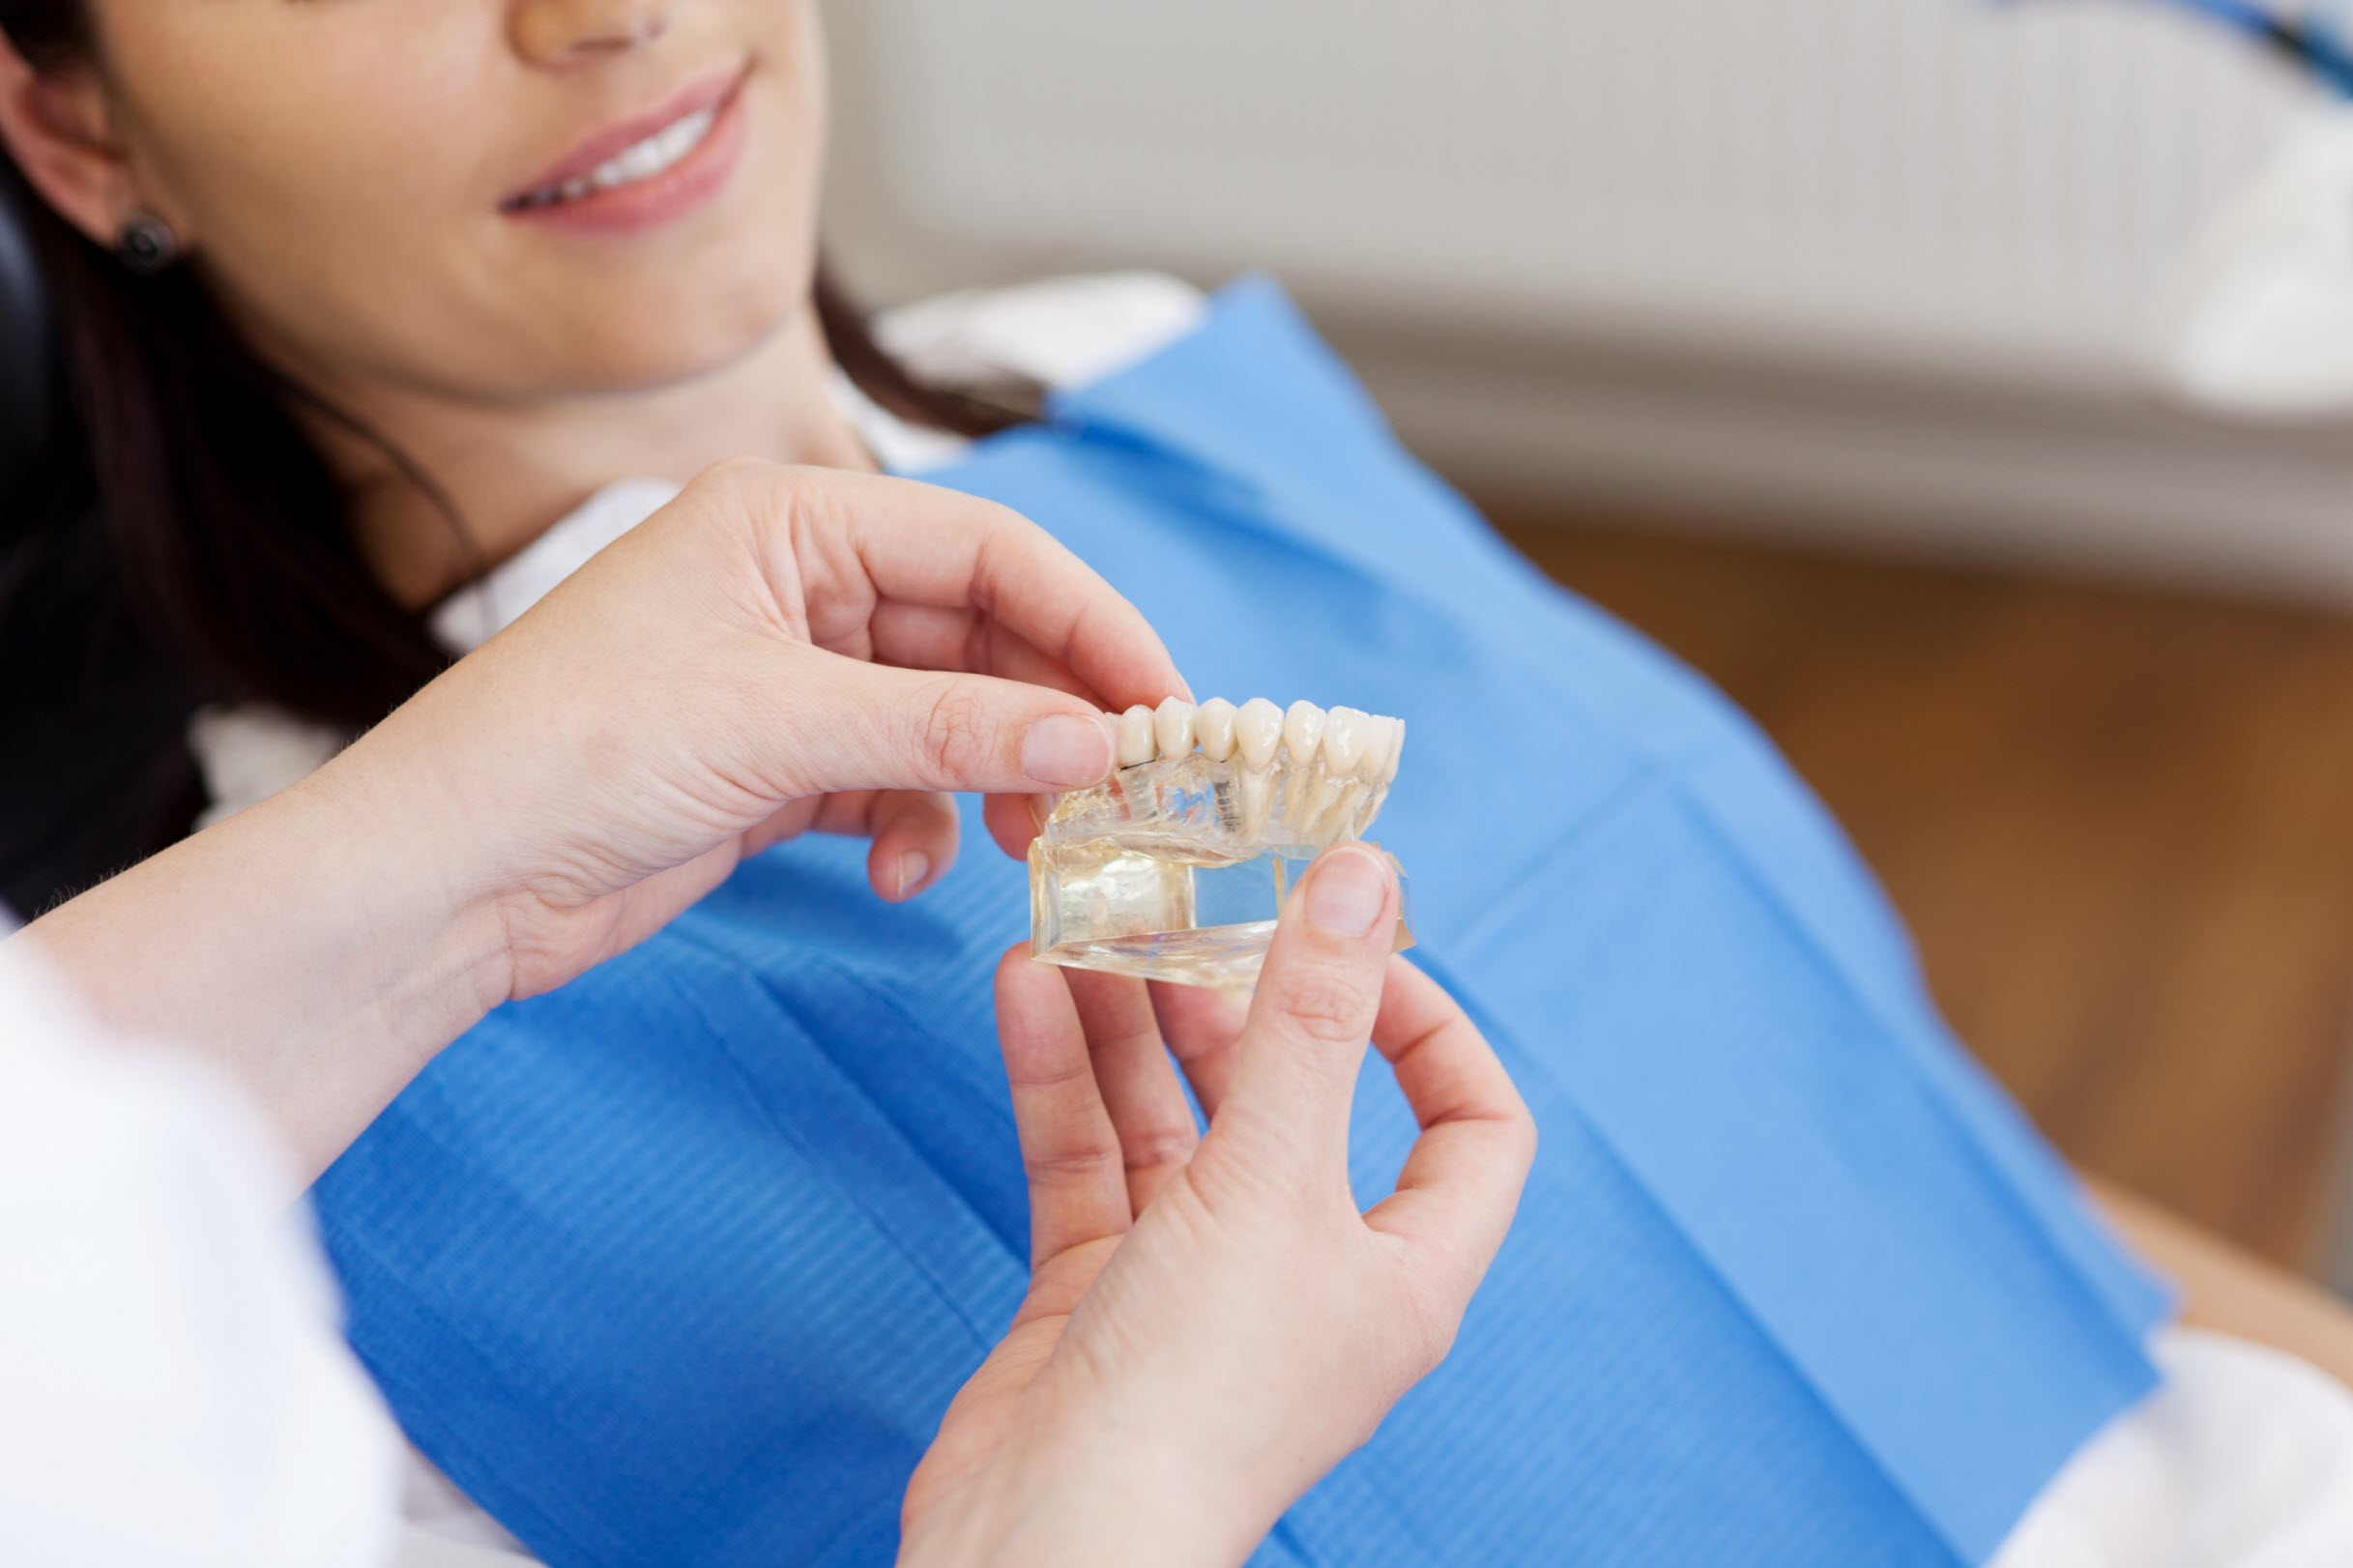 Surgical denture procedure